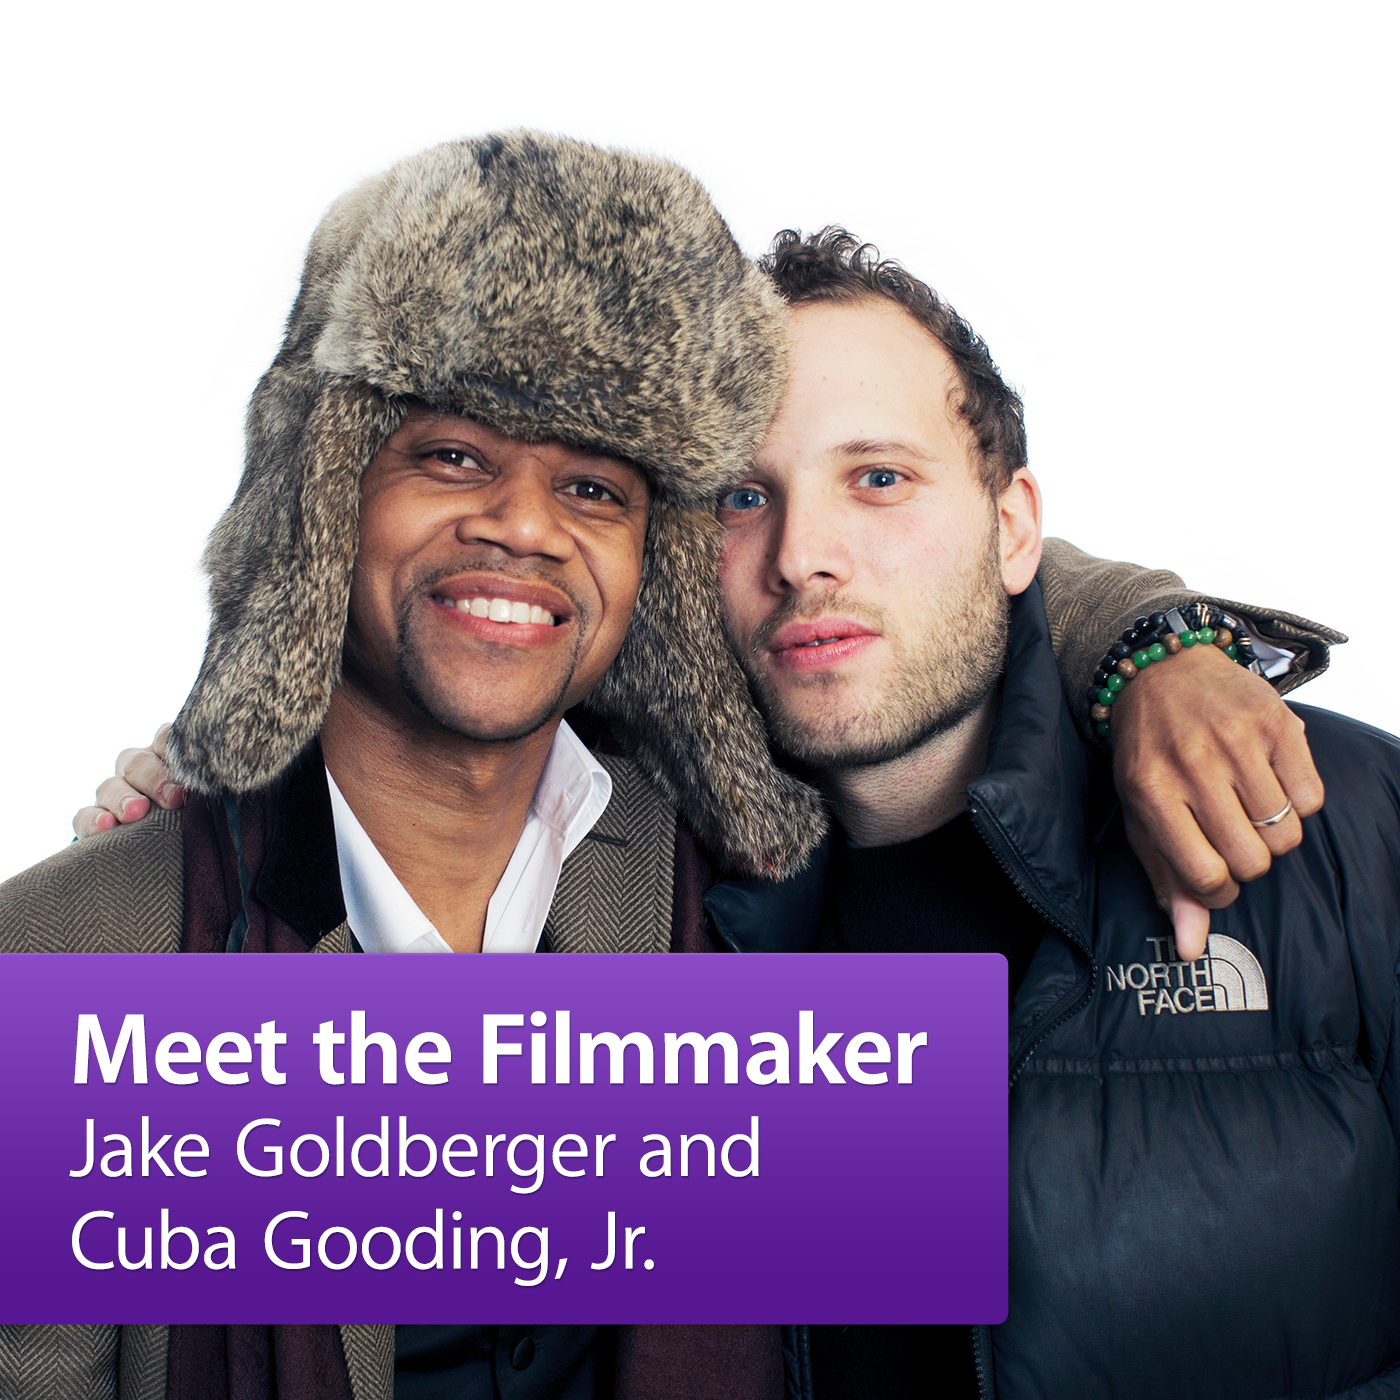 Jake Goldberger and Cuba Gooding, Jr.: Meet the Filmmaker